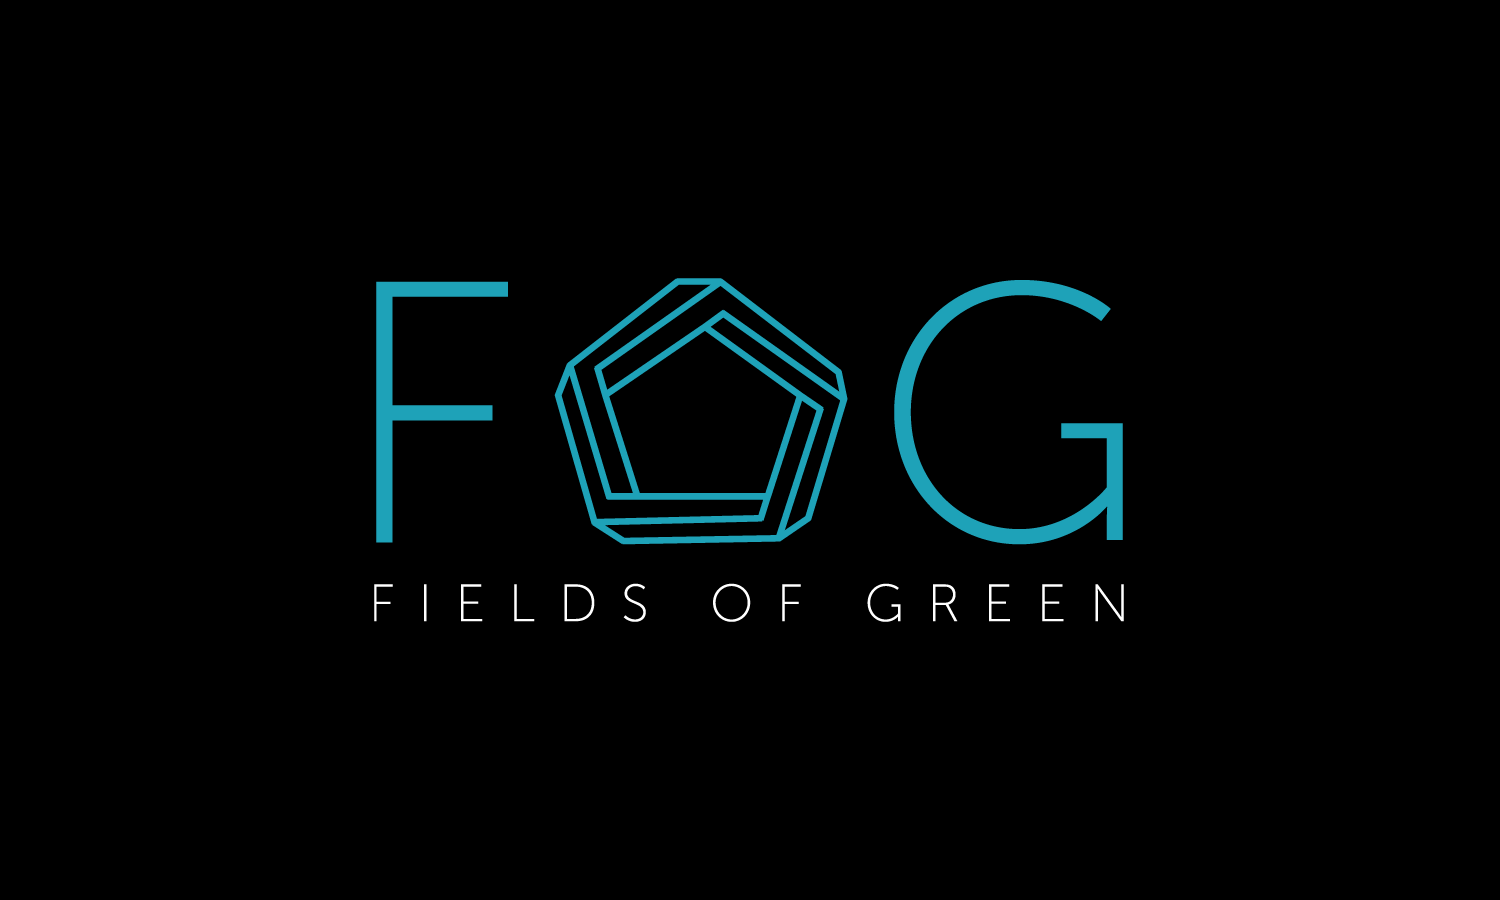 Logo Design by Emelie Halston - Entry No. 70 in the Logo Design Contest Psych-Rock Band FIELDS OF GREEN Logo Design.